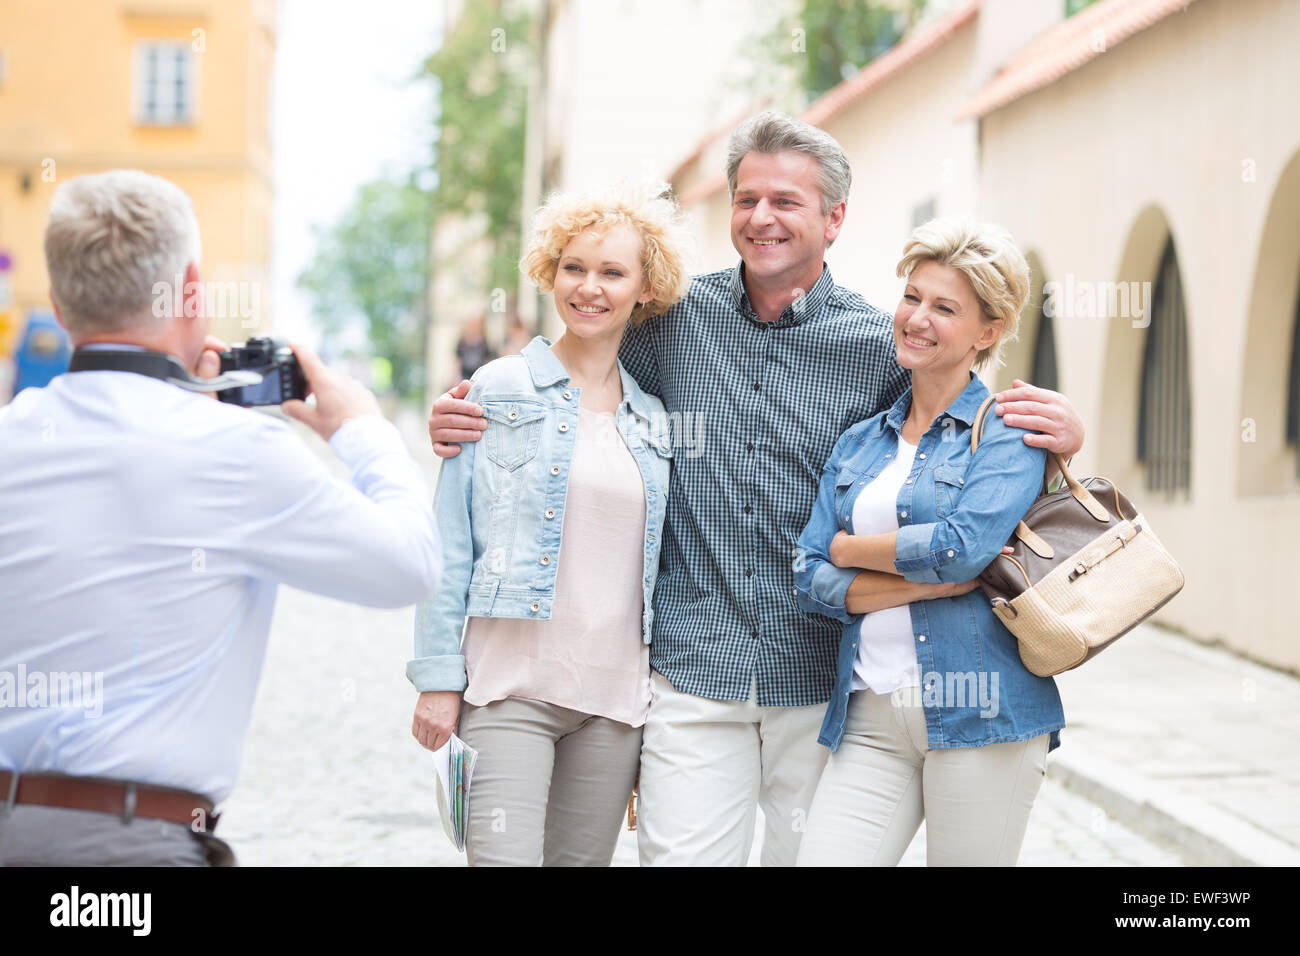 Rear view of man photographing friends in city - Stock Image